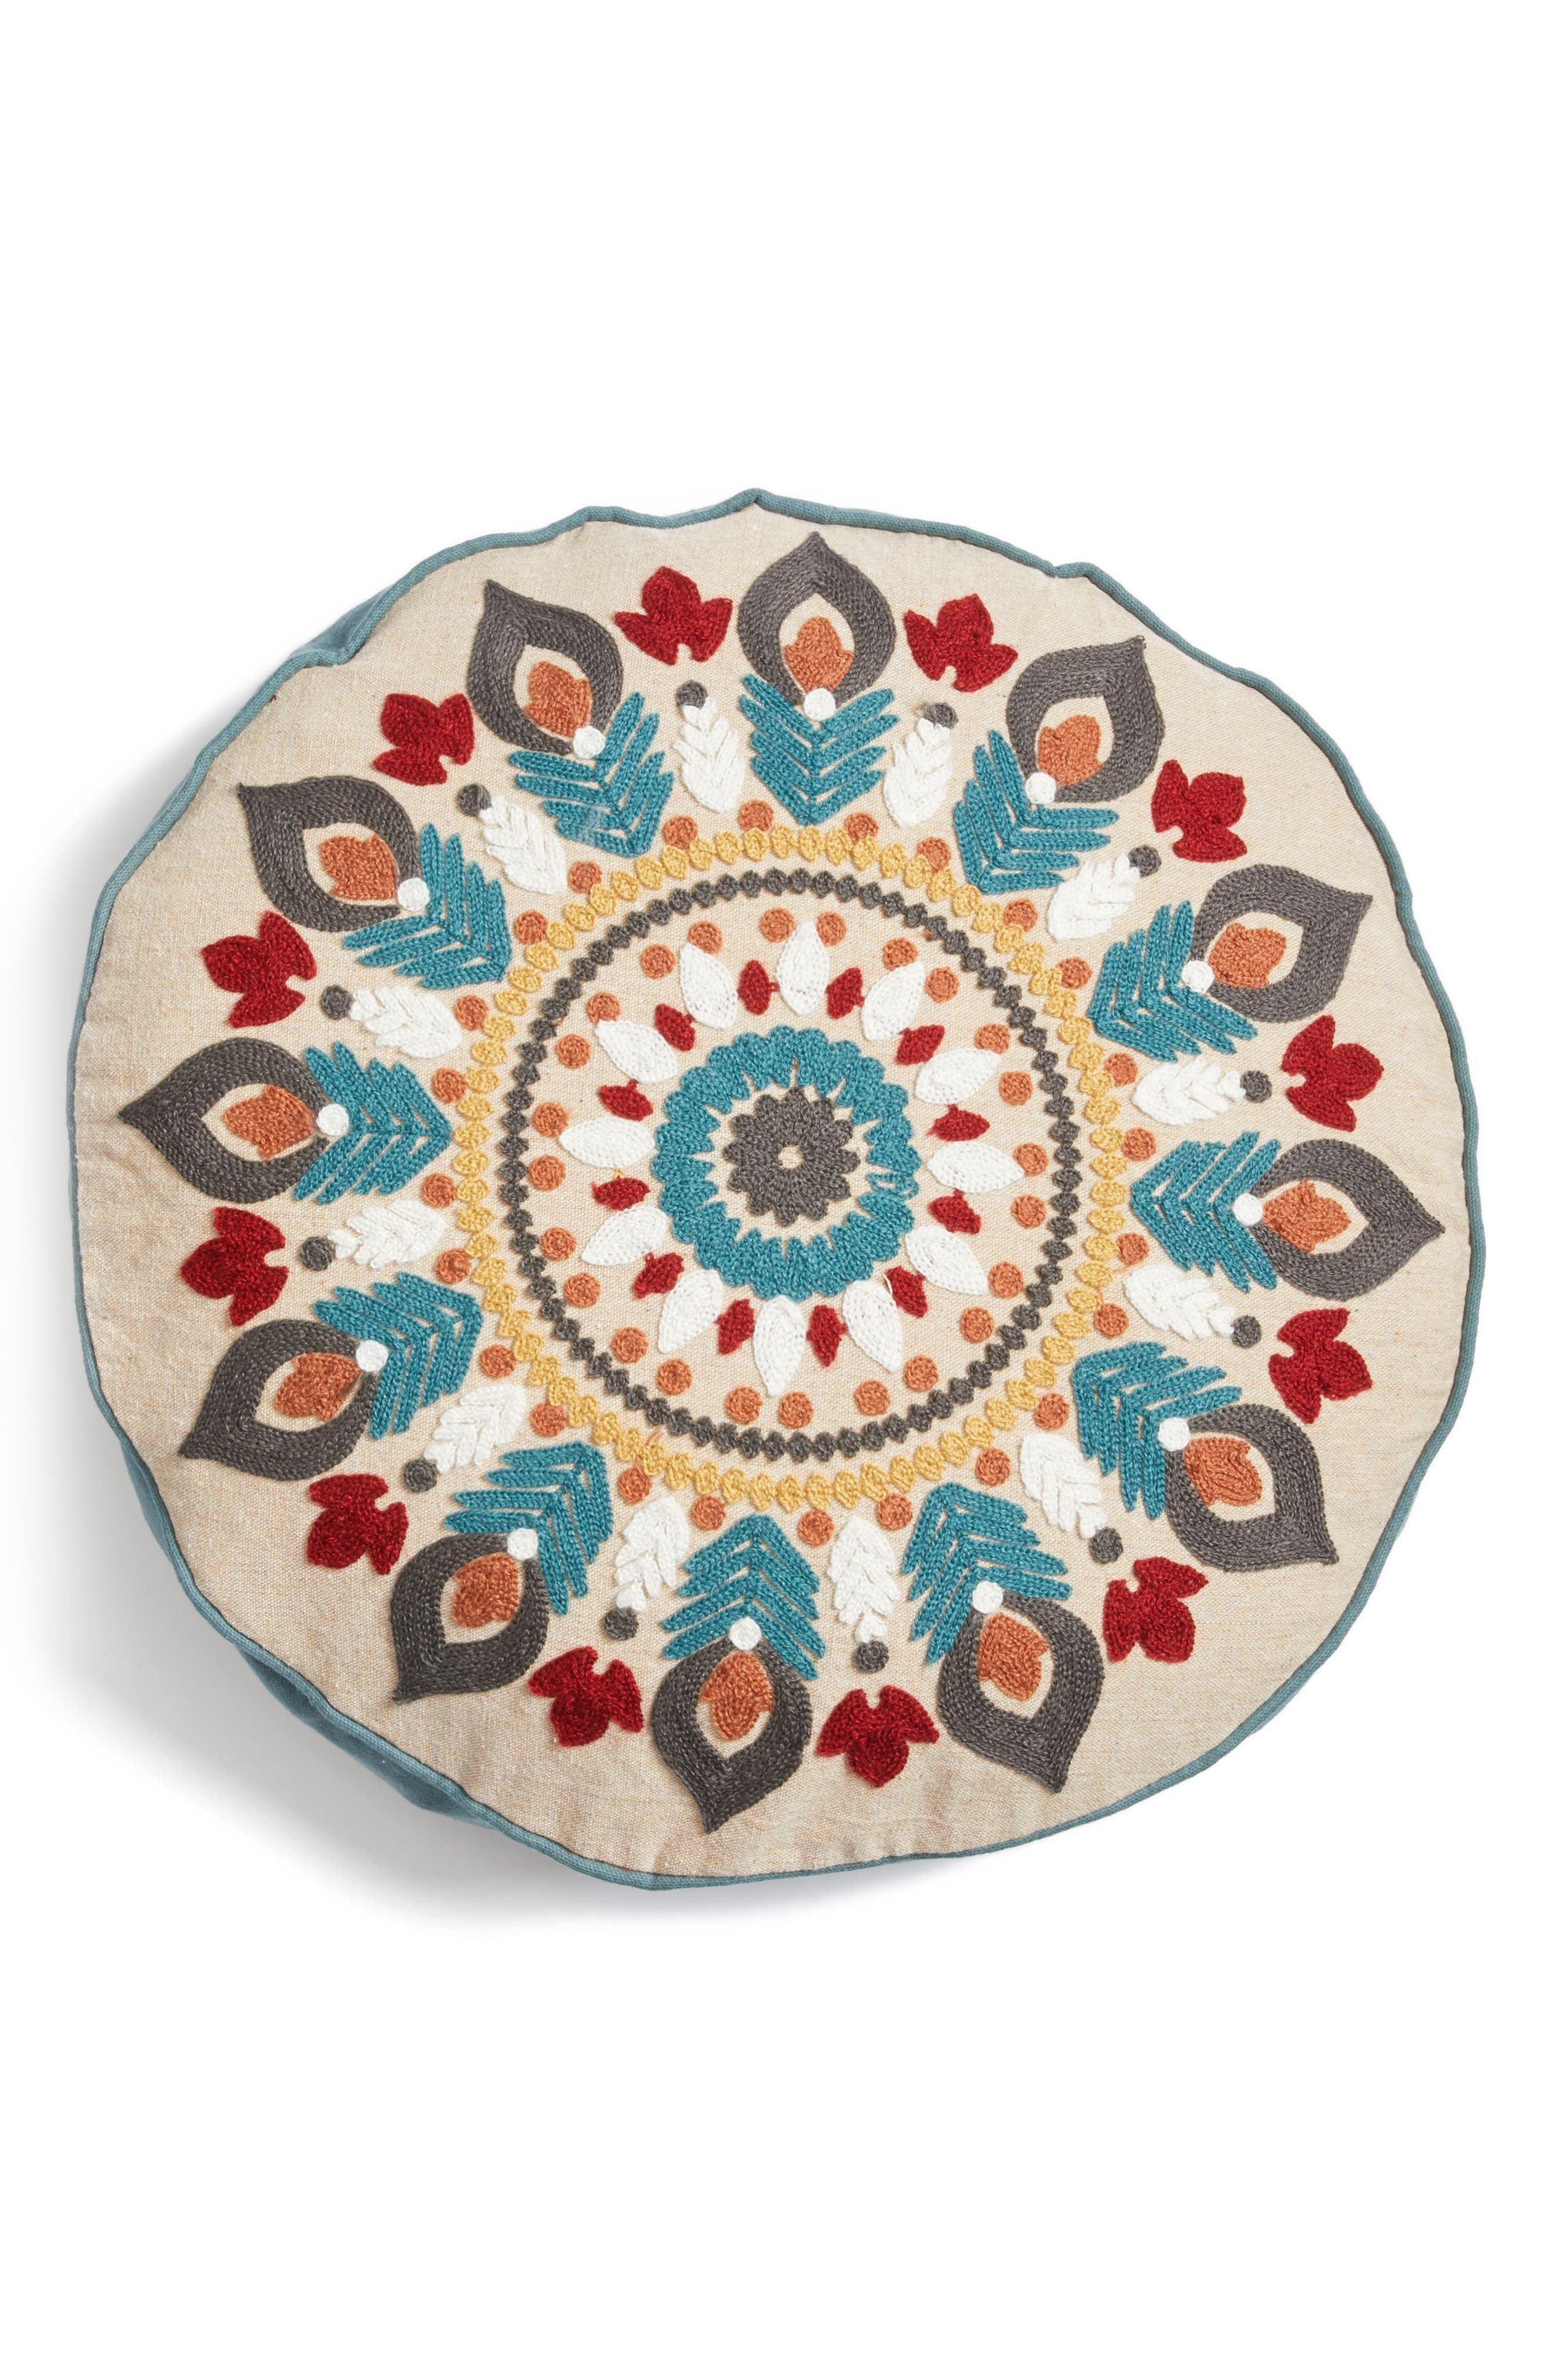 Alternate Image 1 Selected - Levtex Presidio Embroidered Round Accent Pillow